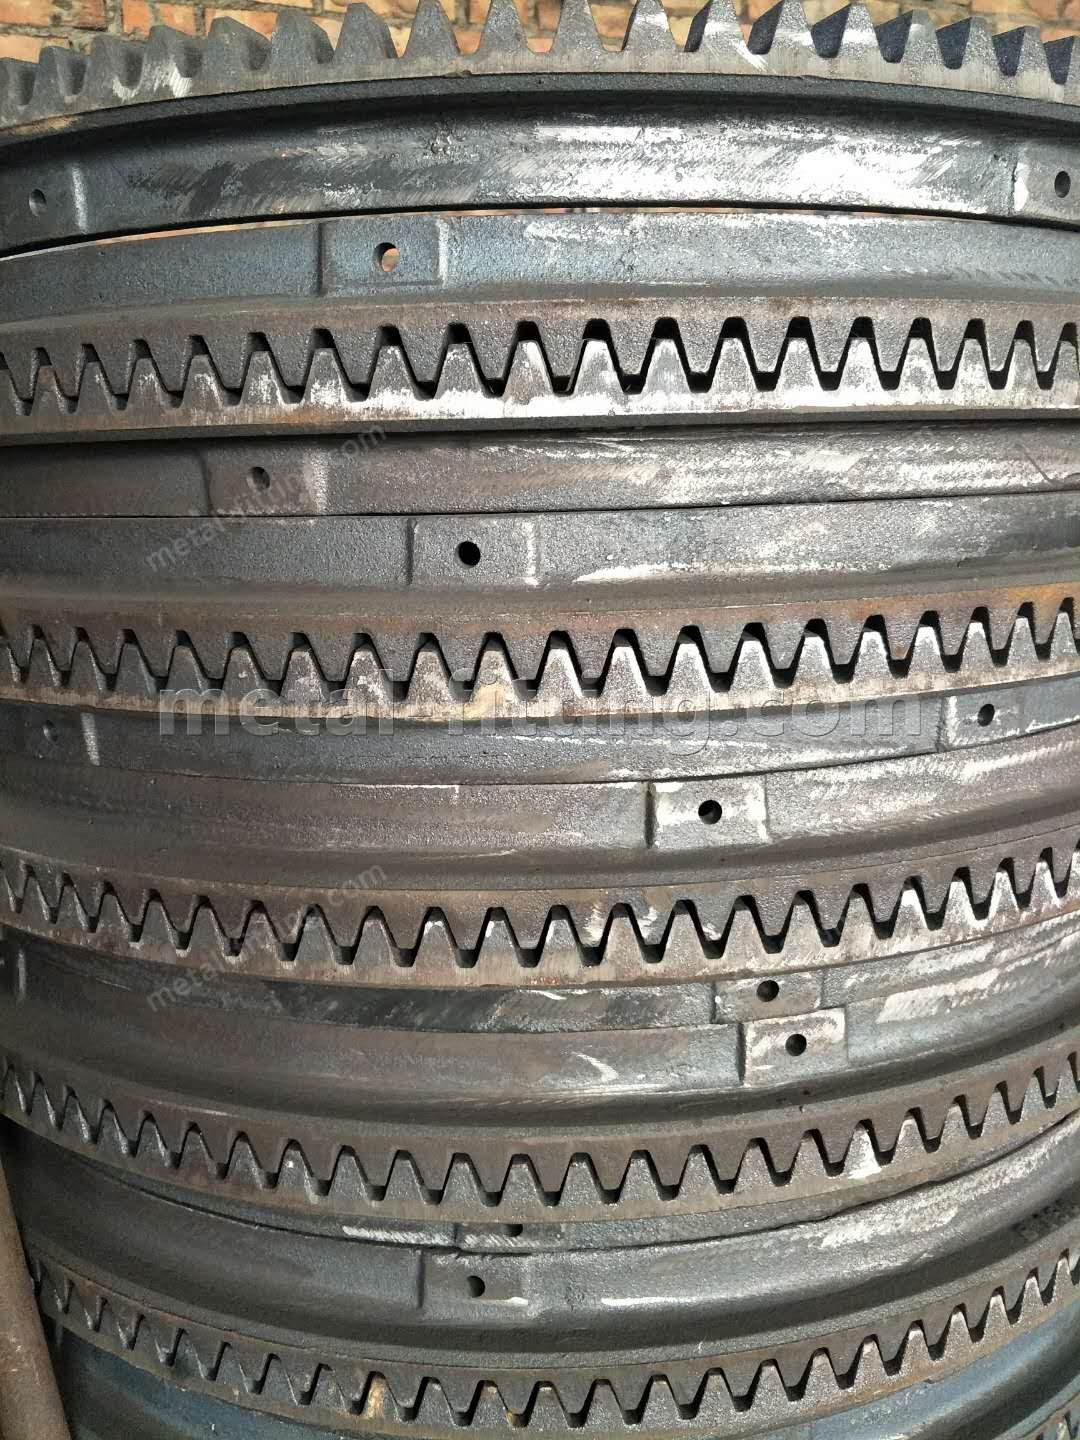 gear ring,cast iron pully,pully,steel spur gear-19702390350007395